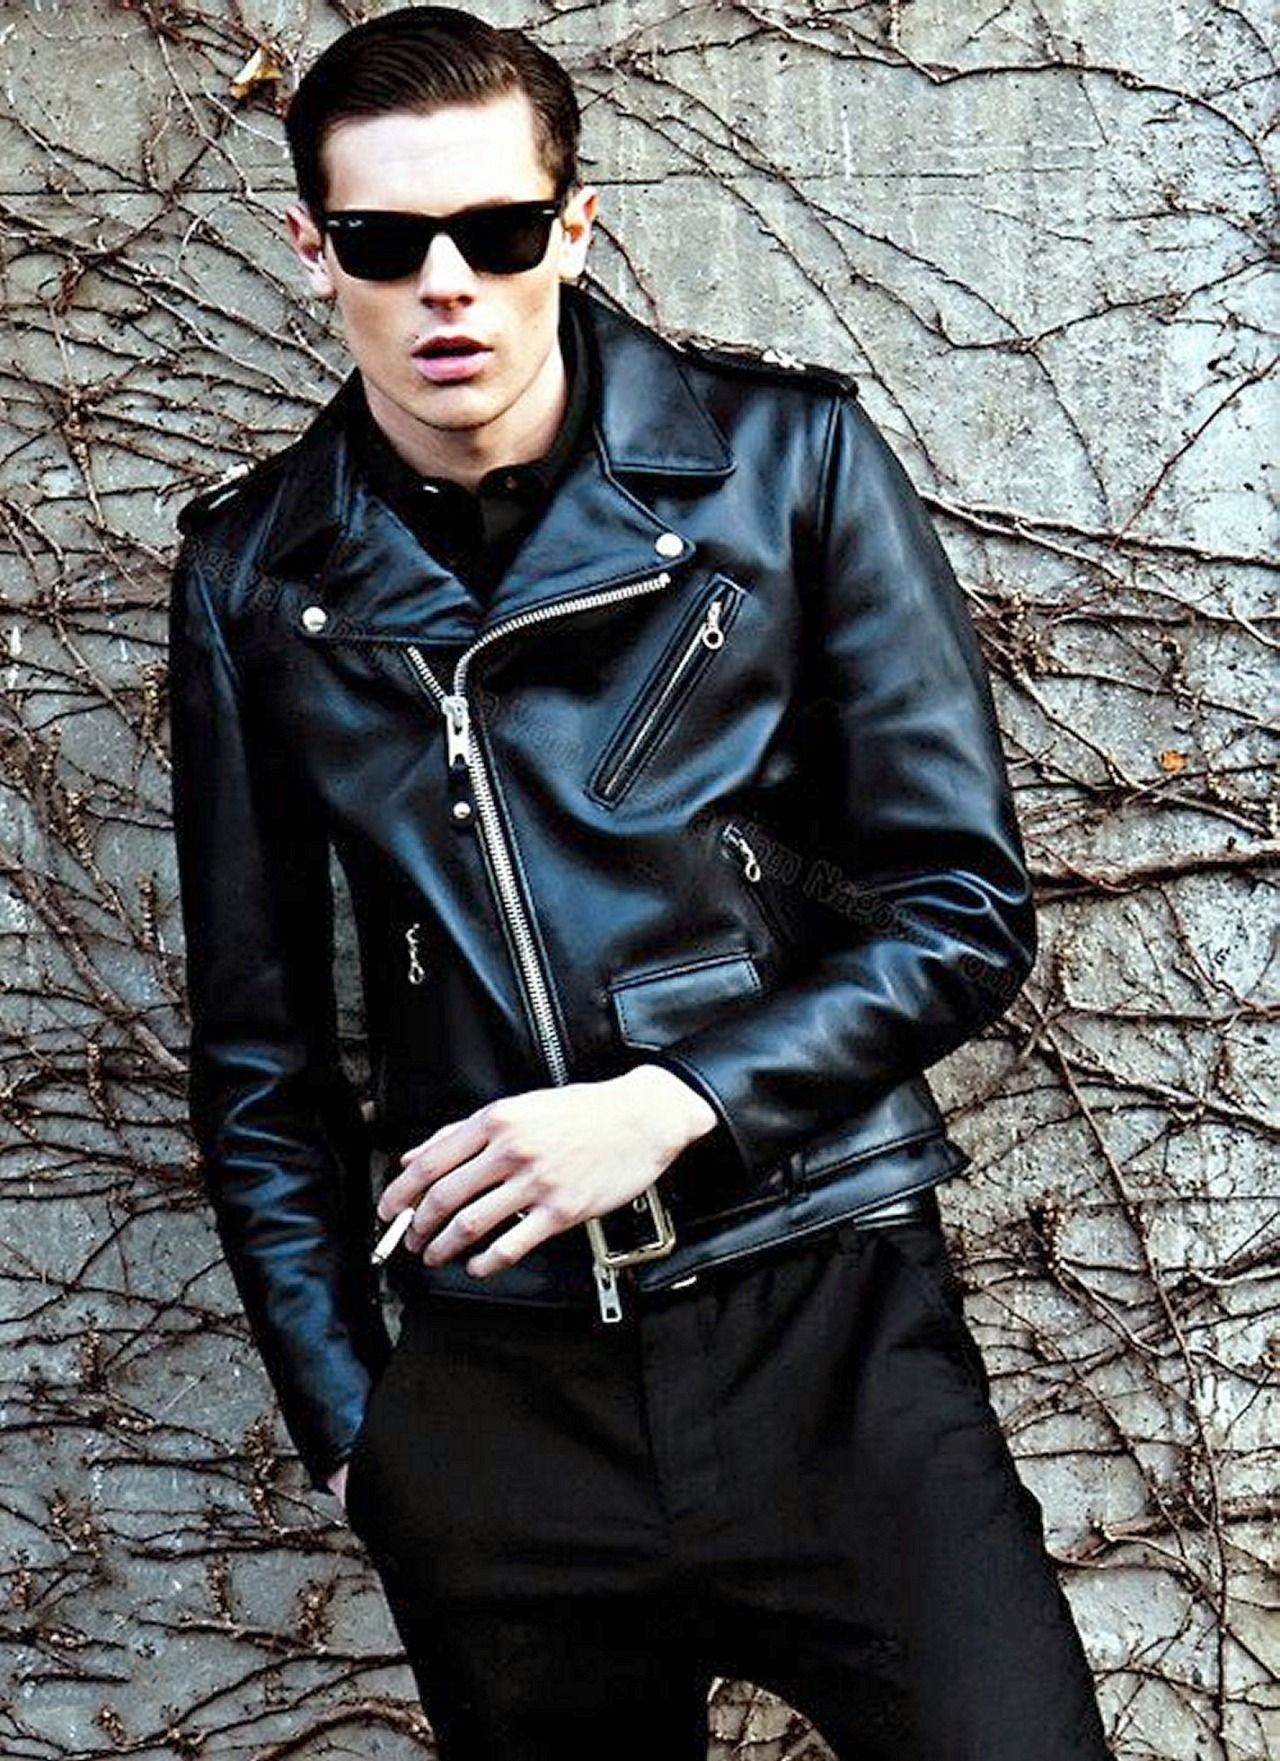 I Understand Wish To Continue Photo Leather Jacket Men Style Leather Jacket Men Leather Jacket Street Style [ 1761 x 1280 Pixel ]